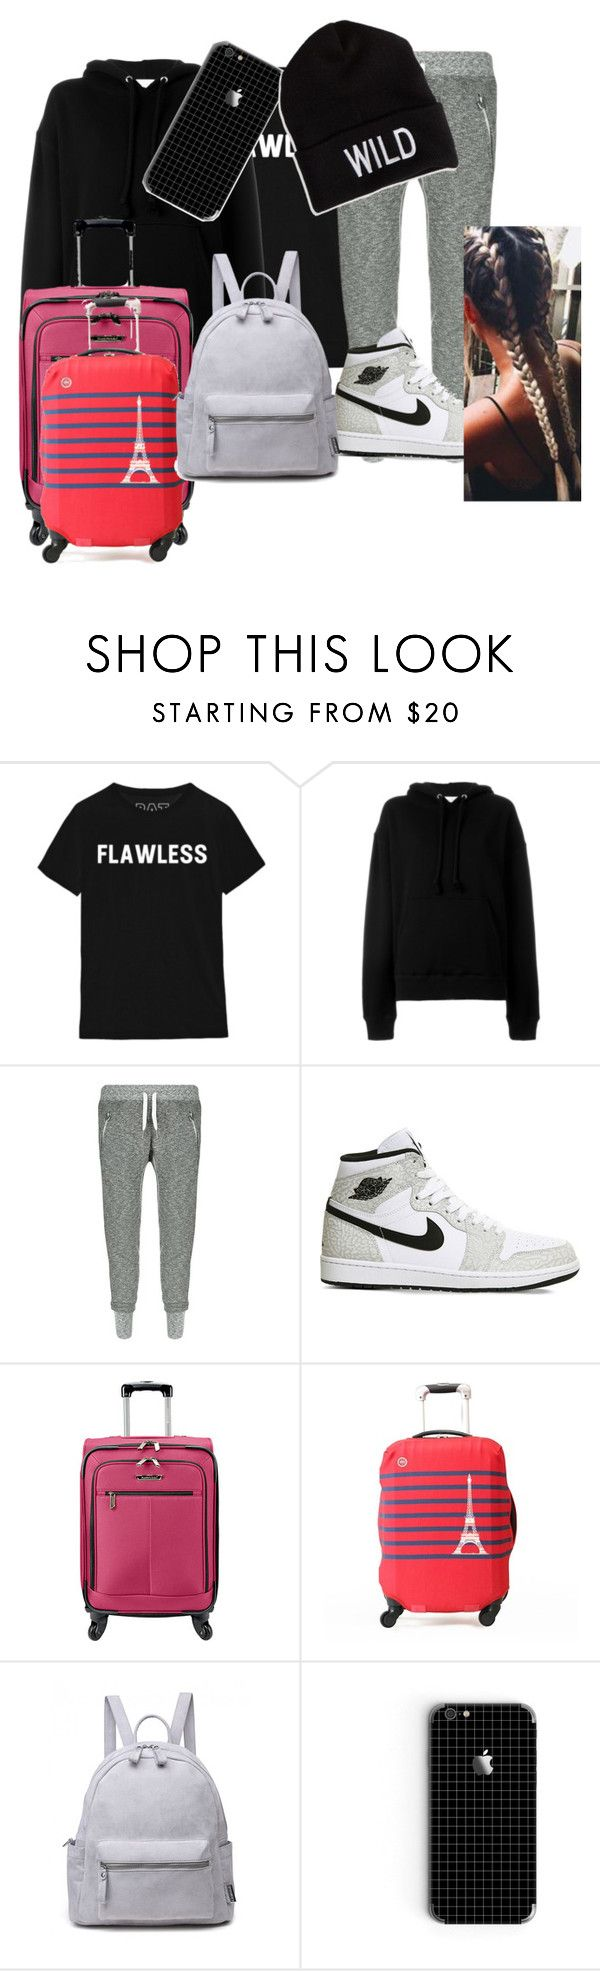 """""""Outfit for a plane"""" by igotnojams ❤ liked on Polyvore featuring IRO, True Religion, NIKE, Traveler's Choice, American Eagle Outfitters, outfit, plane and summer2016"""